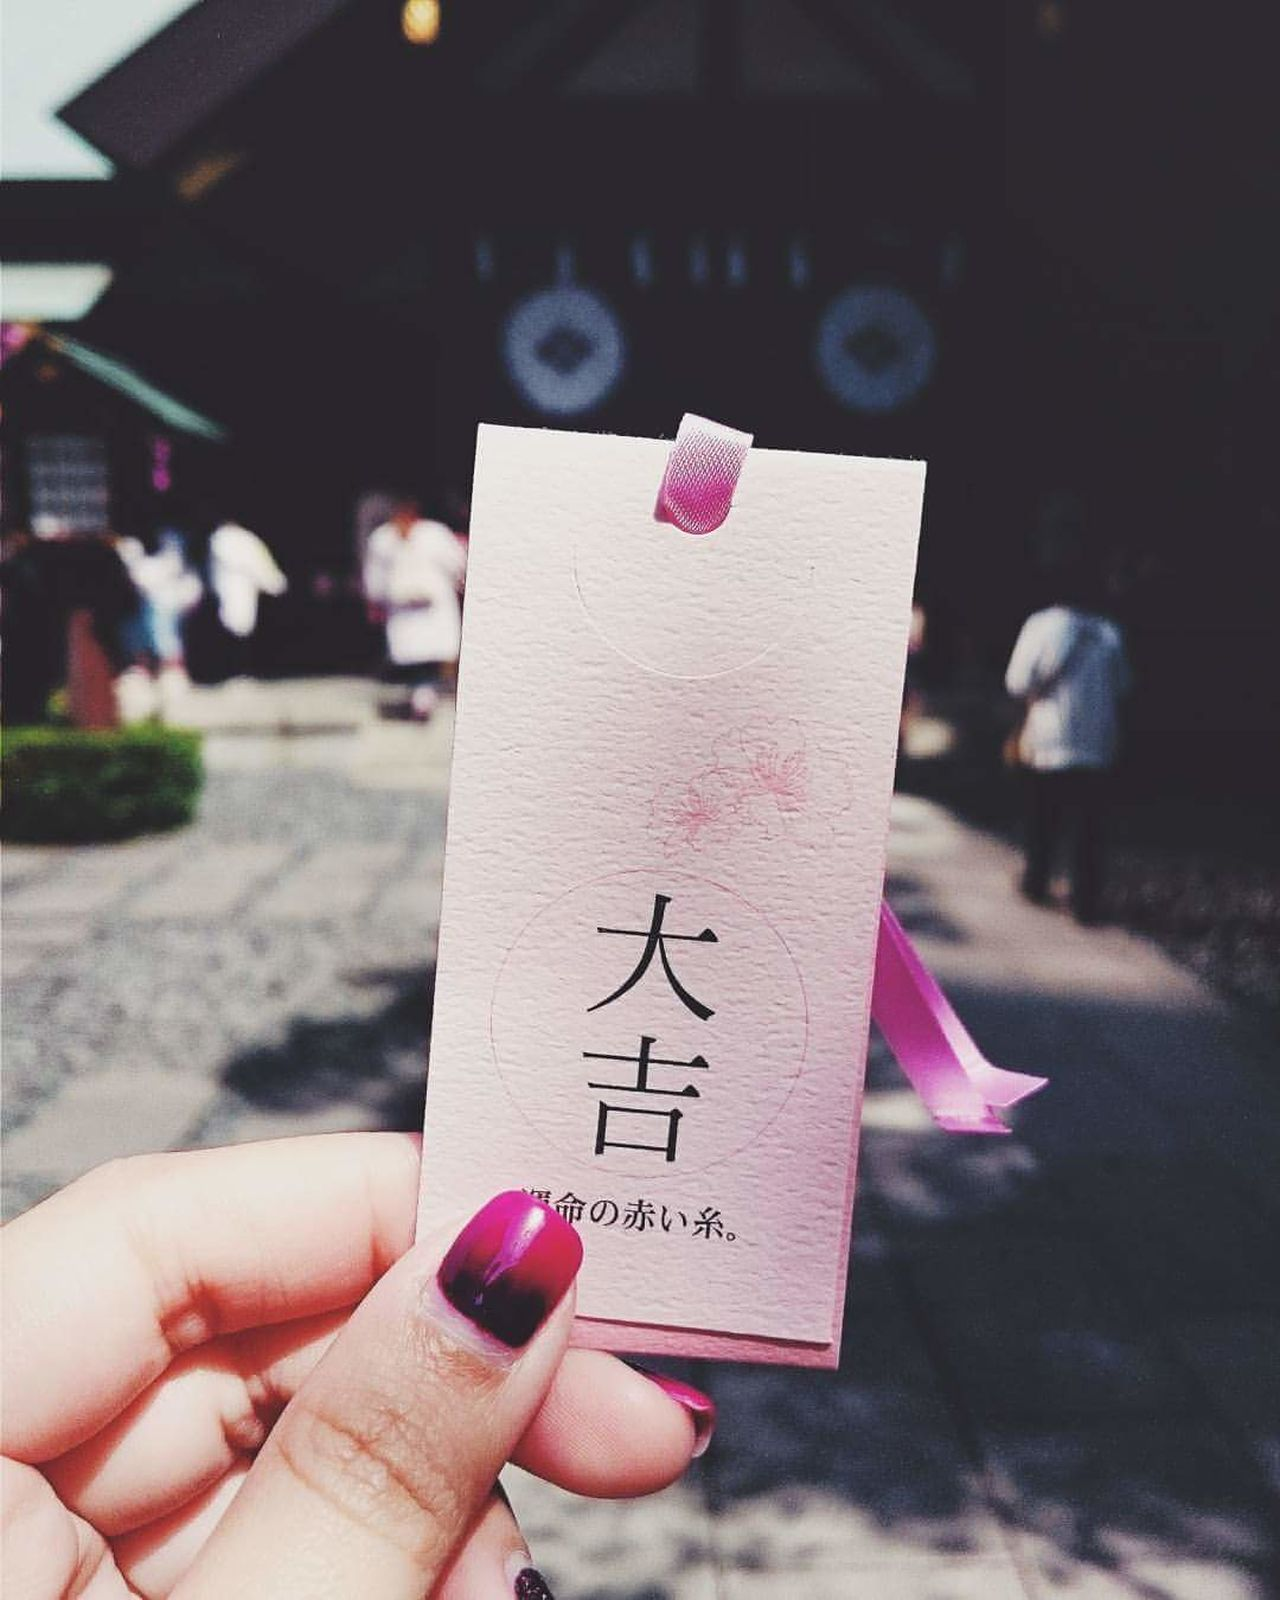 Outdoors Holding Shrine Shrine Of Japan JapanTokyo Divination Omikuji Fortune Daikichi Goodluck Good Luck Fate  Destiny Nails Ombre Ombre Nails Pink Purple Spring